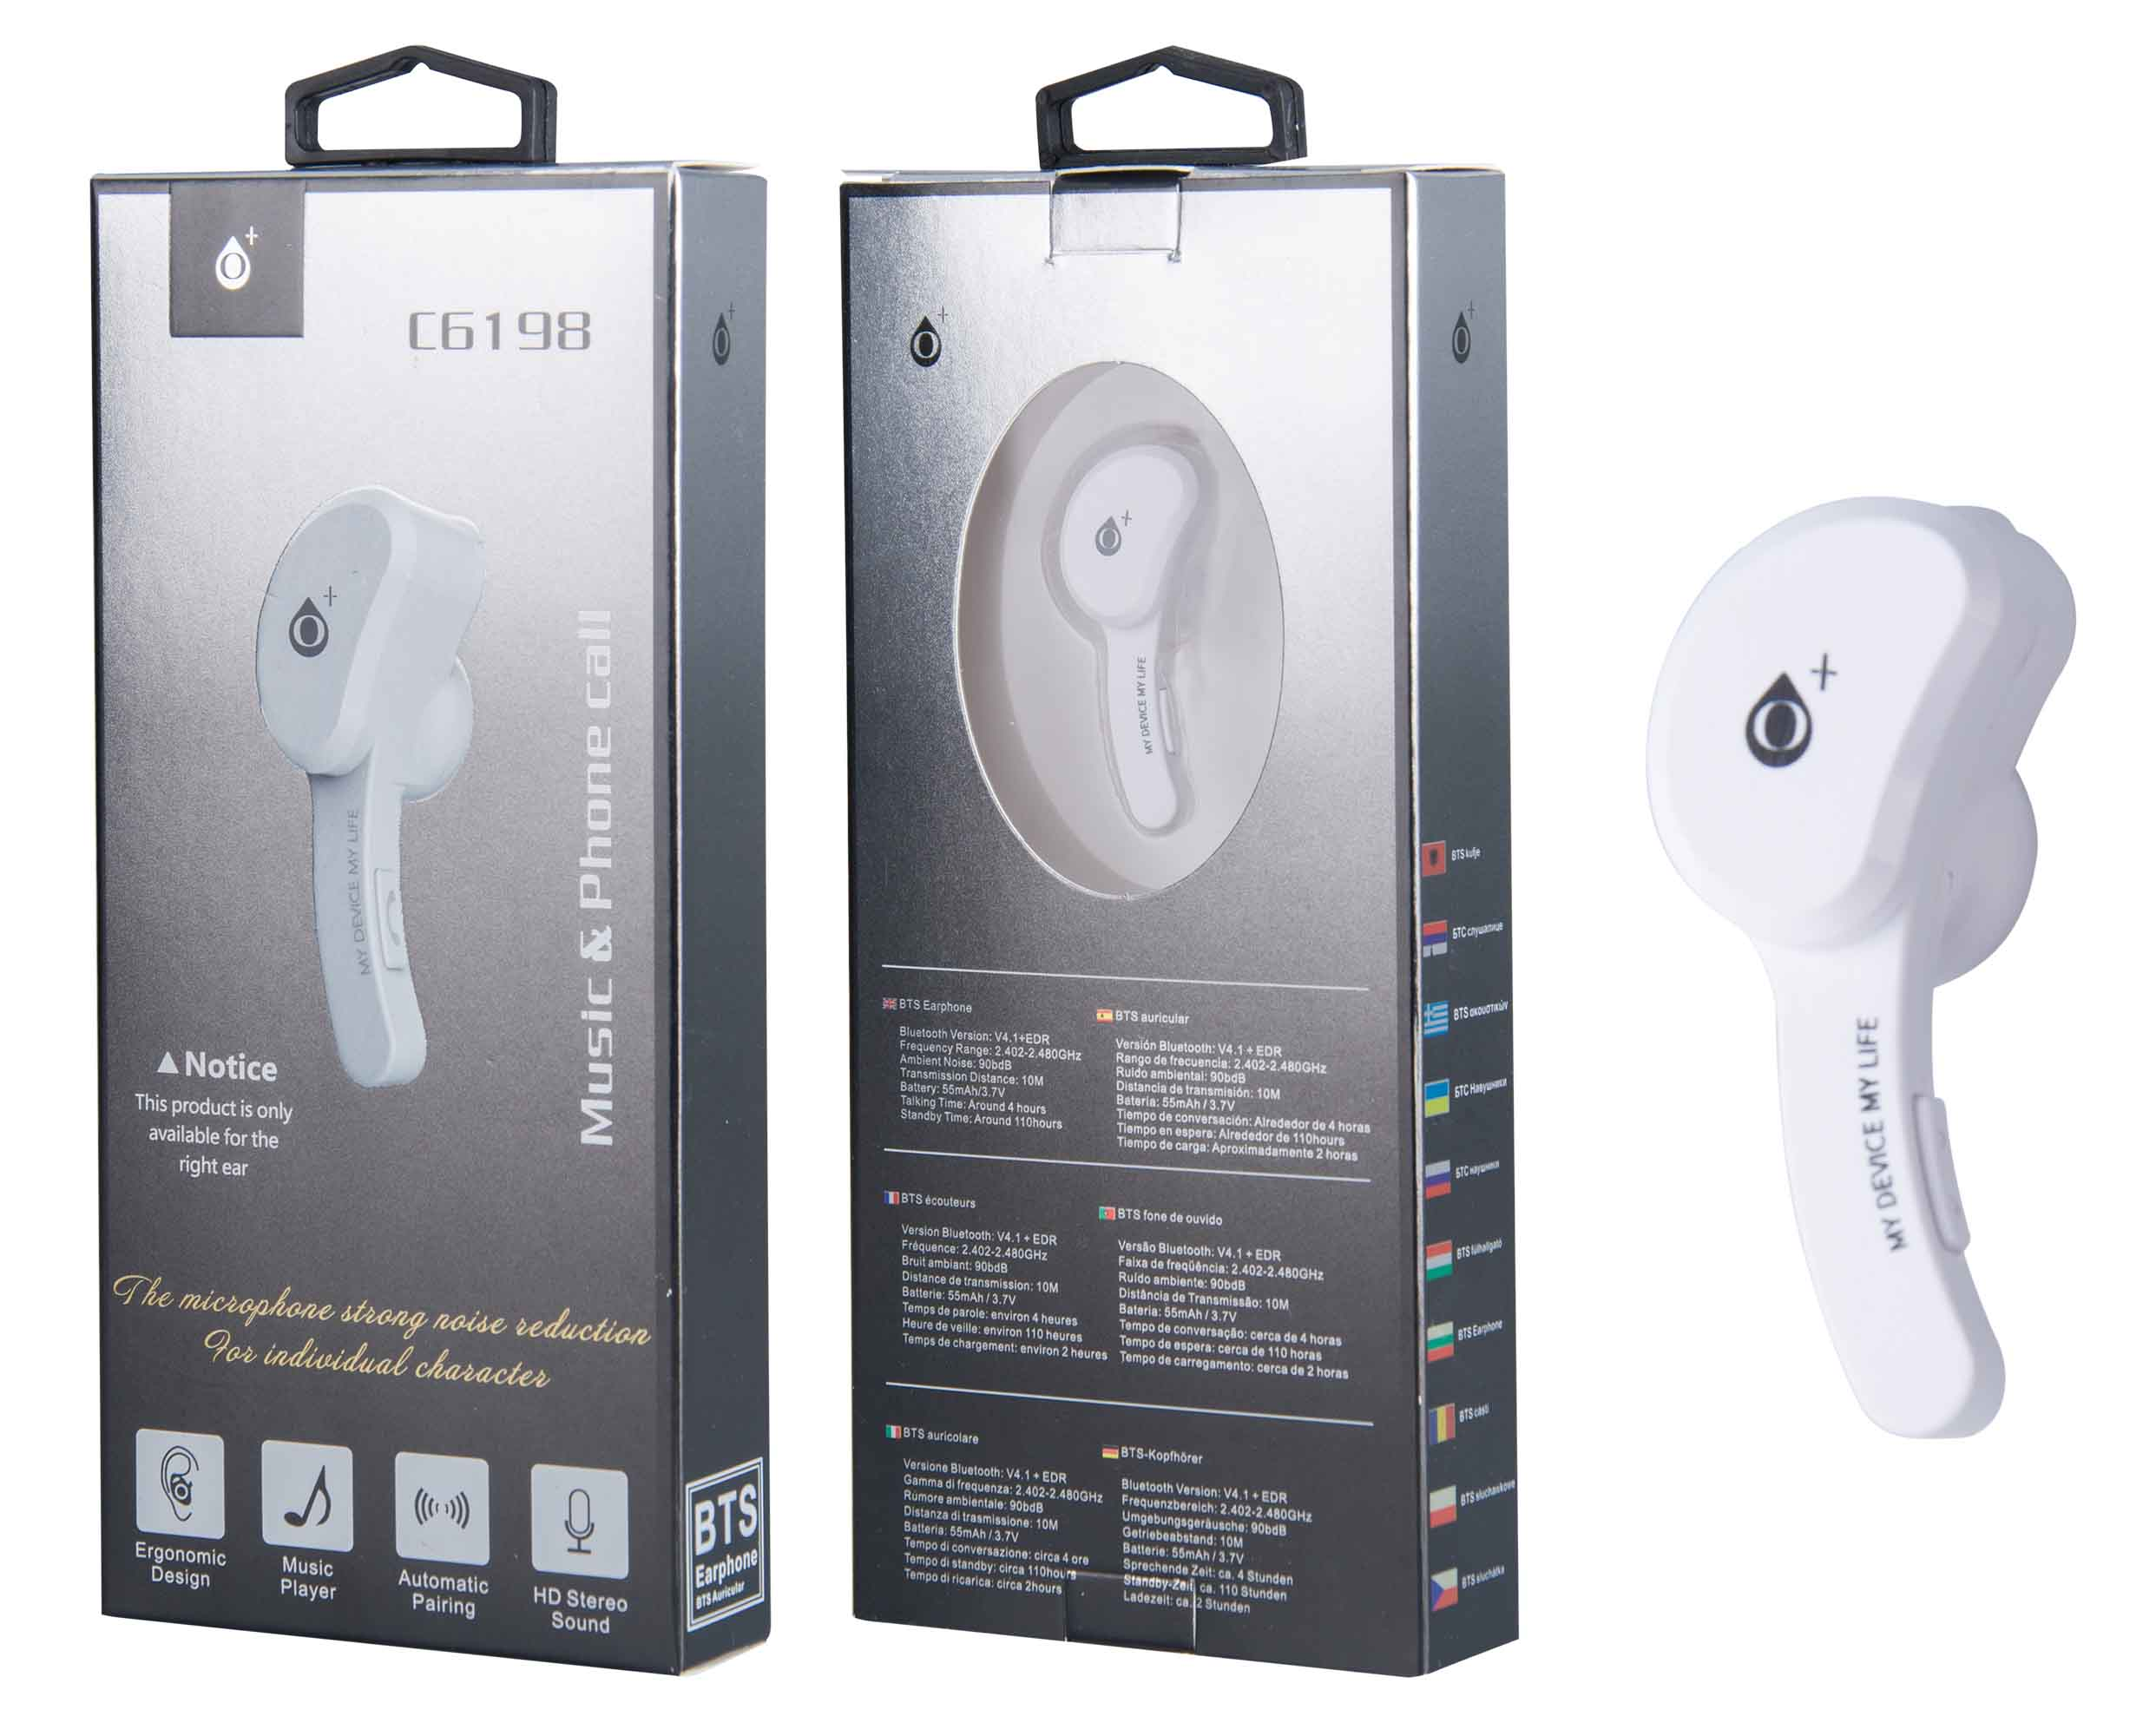 Auricular Bluetooth Twins para 2 Dispositivos BTS, Blanco